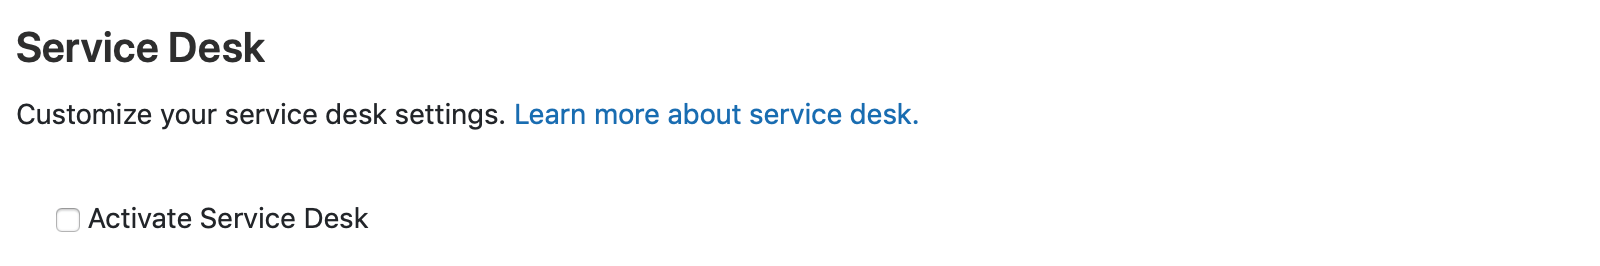 doc/user/project/img/service_desk_disabled.png